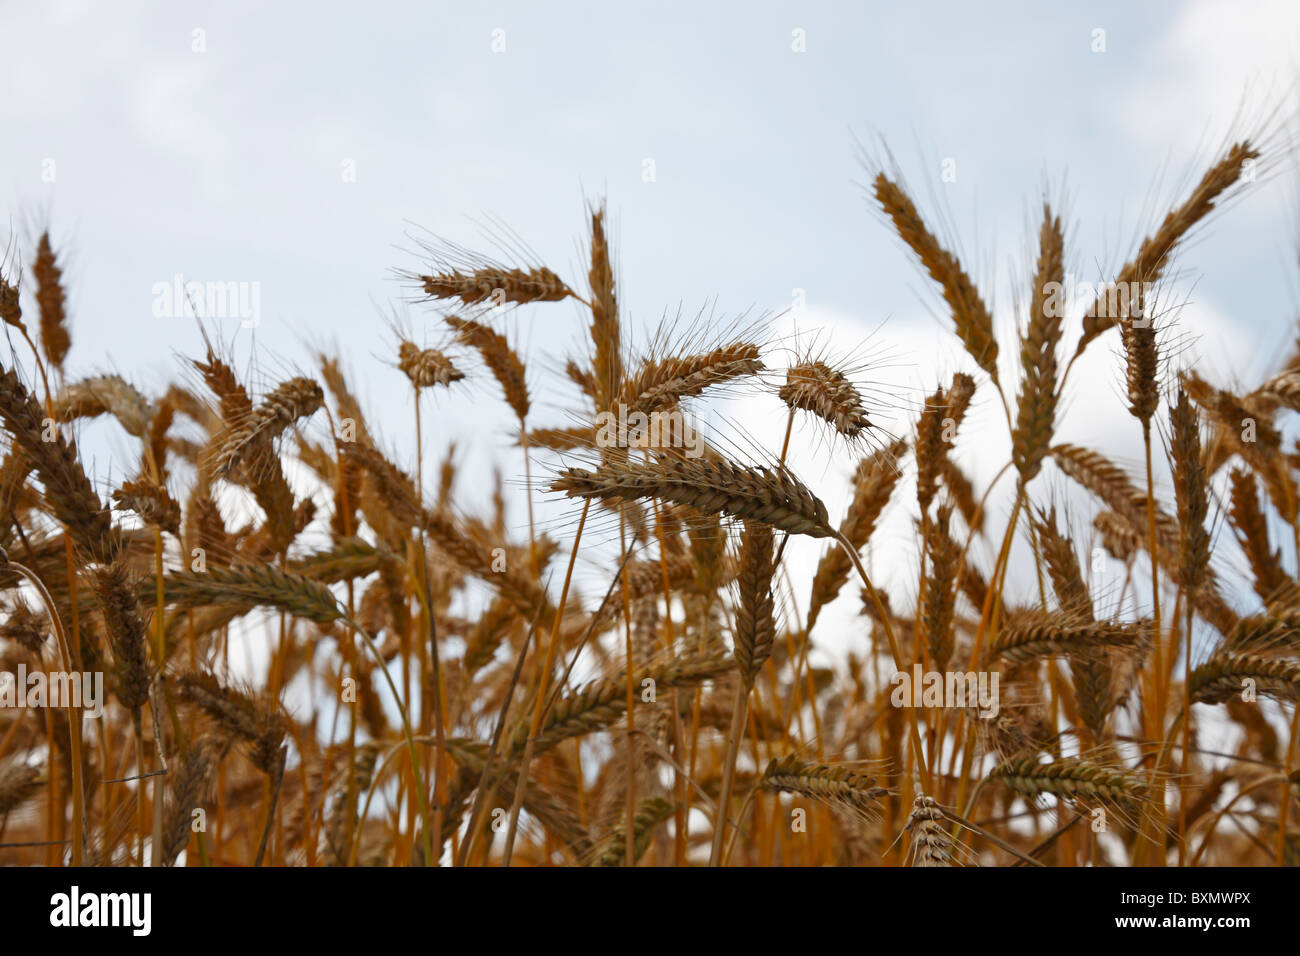 Ears of corn of wheat against a blue sky with white clouds, Denmark - Stock Image